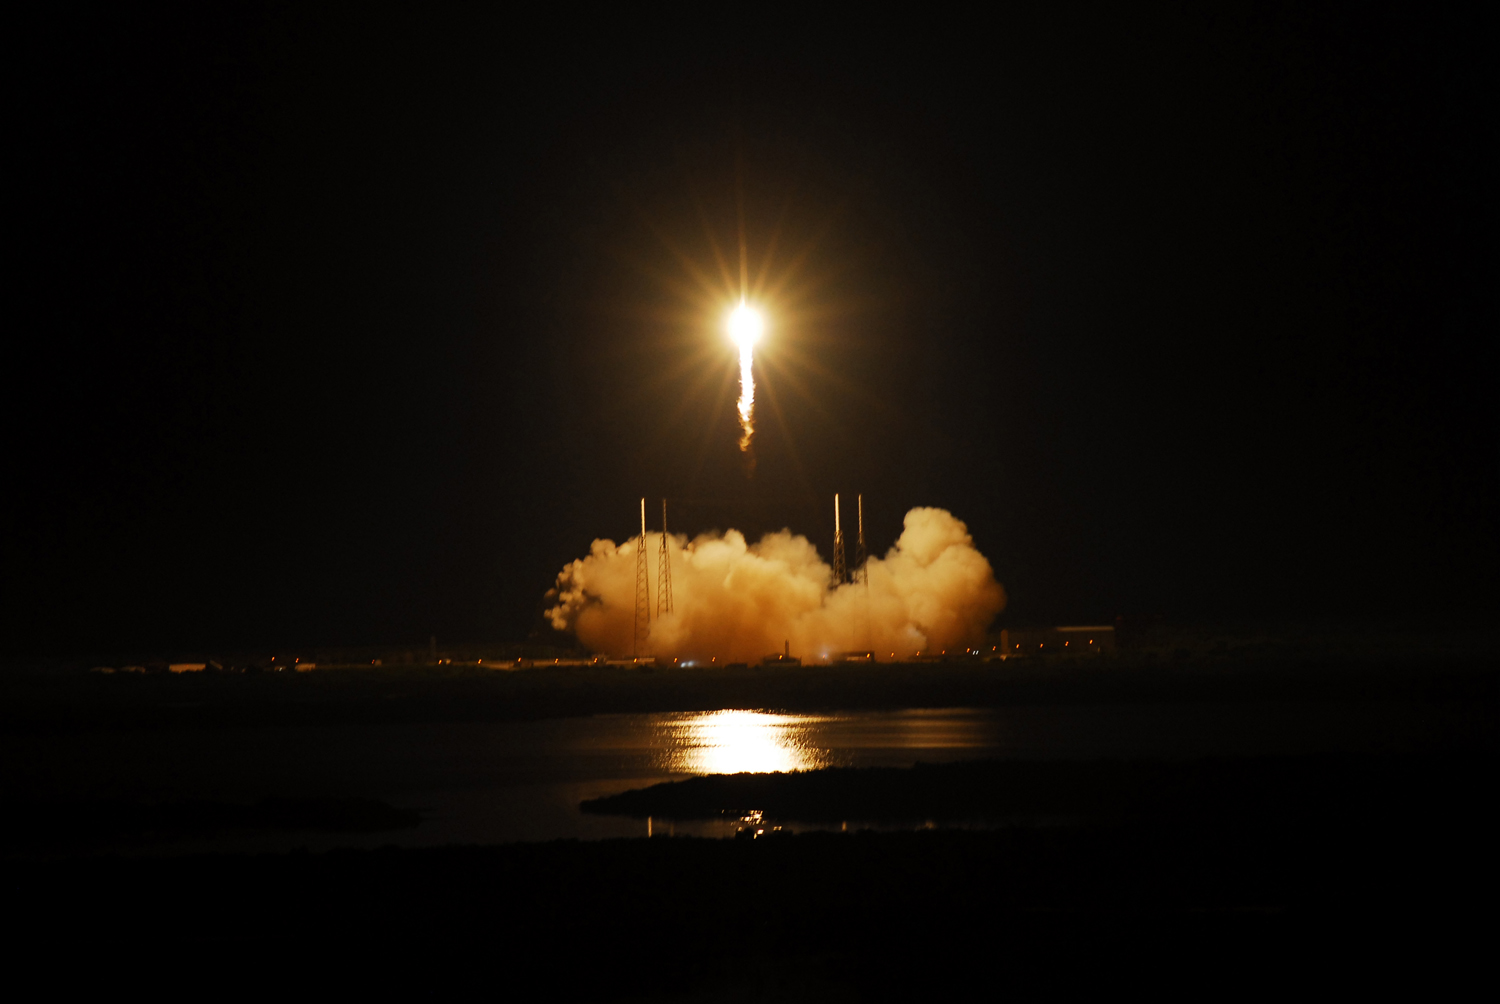 Private Rocket Launch Vindicates Commercial Spaceflight Model